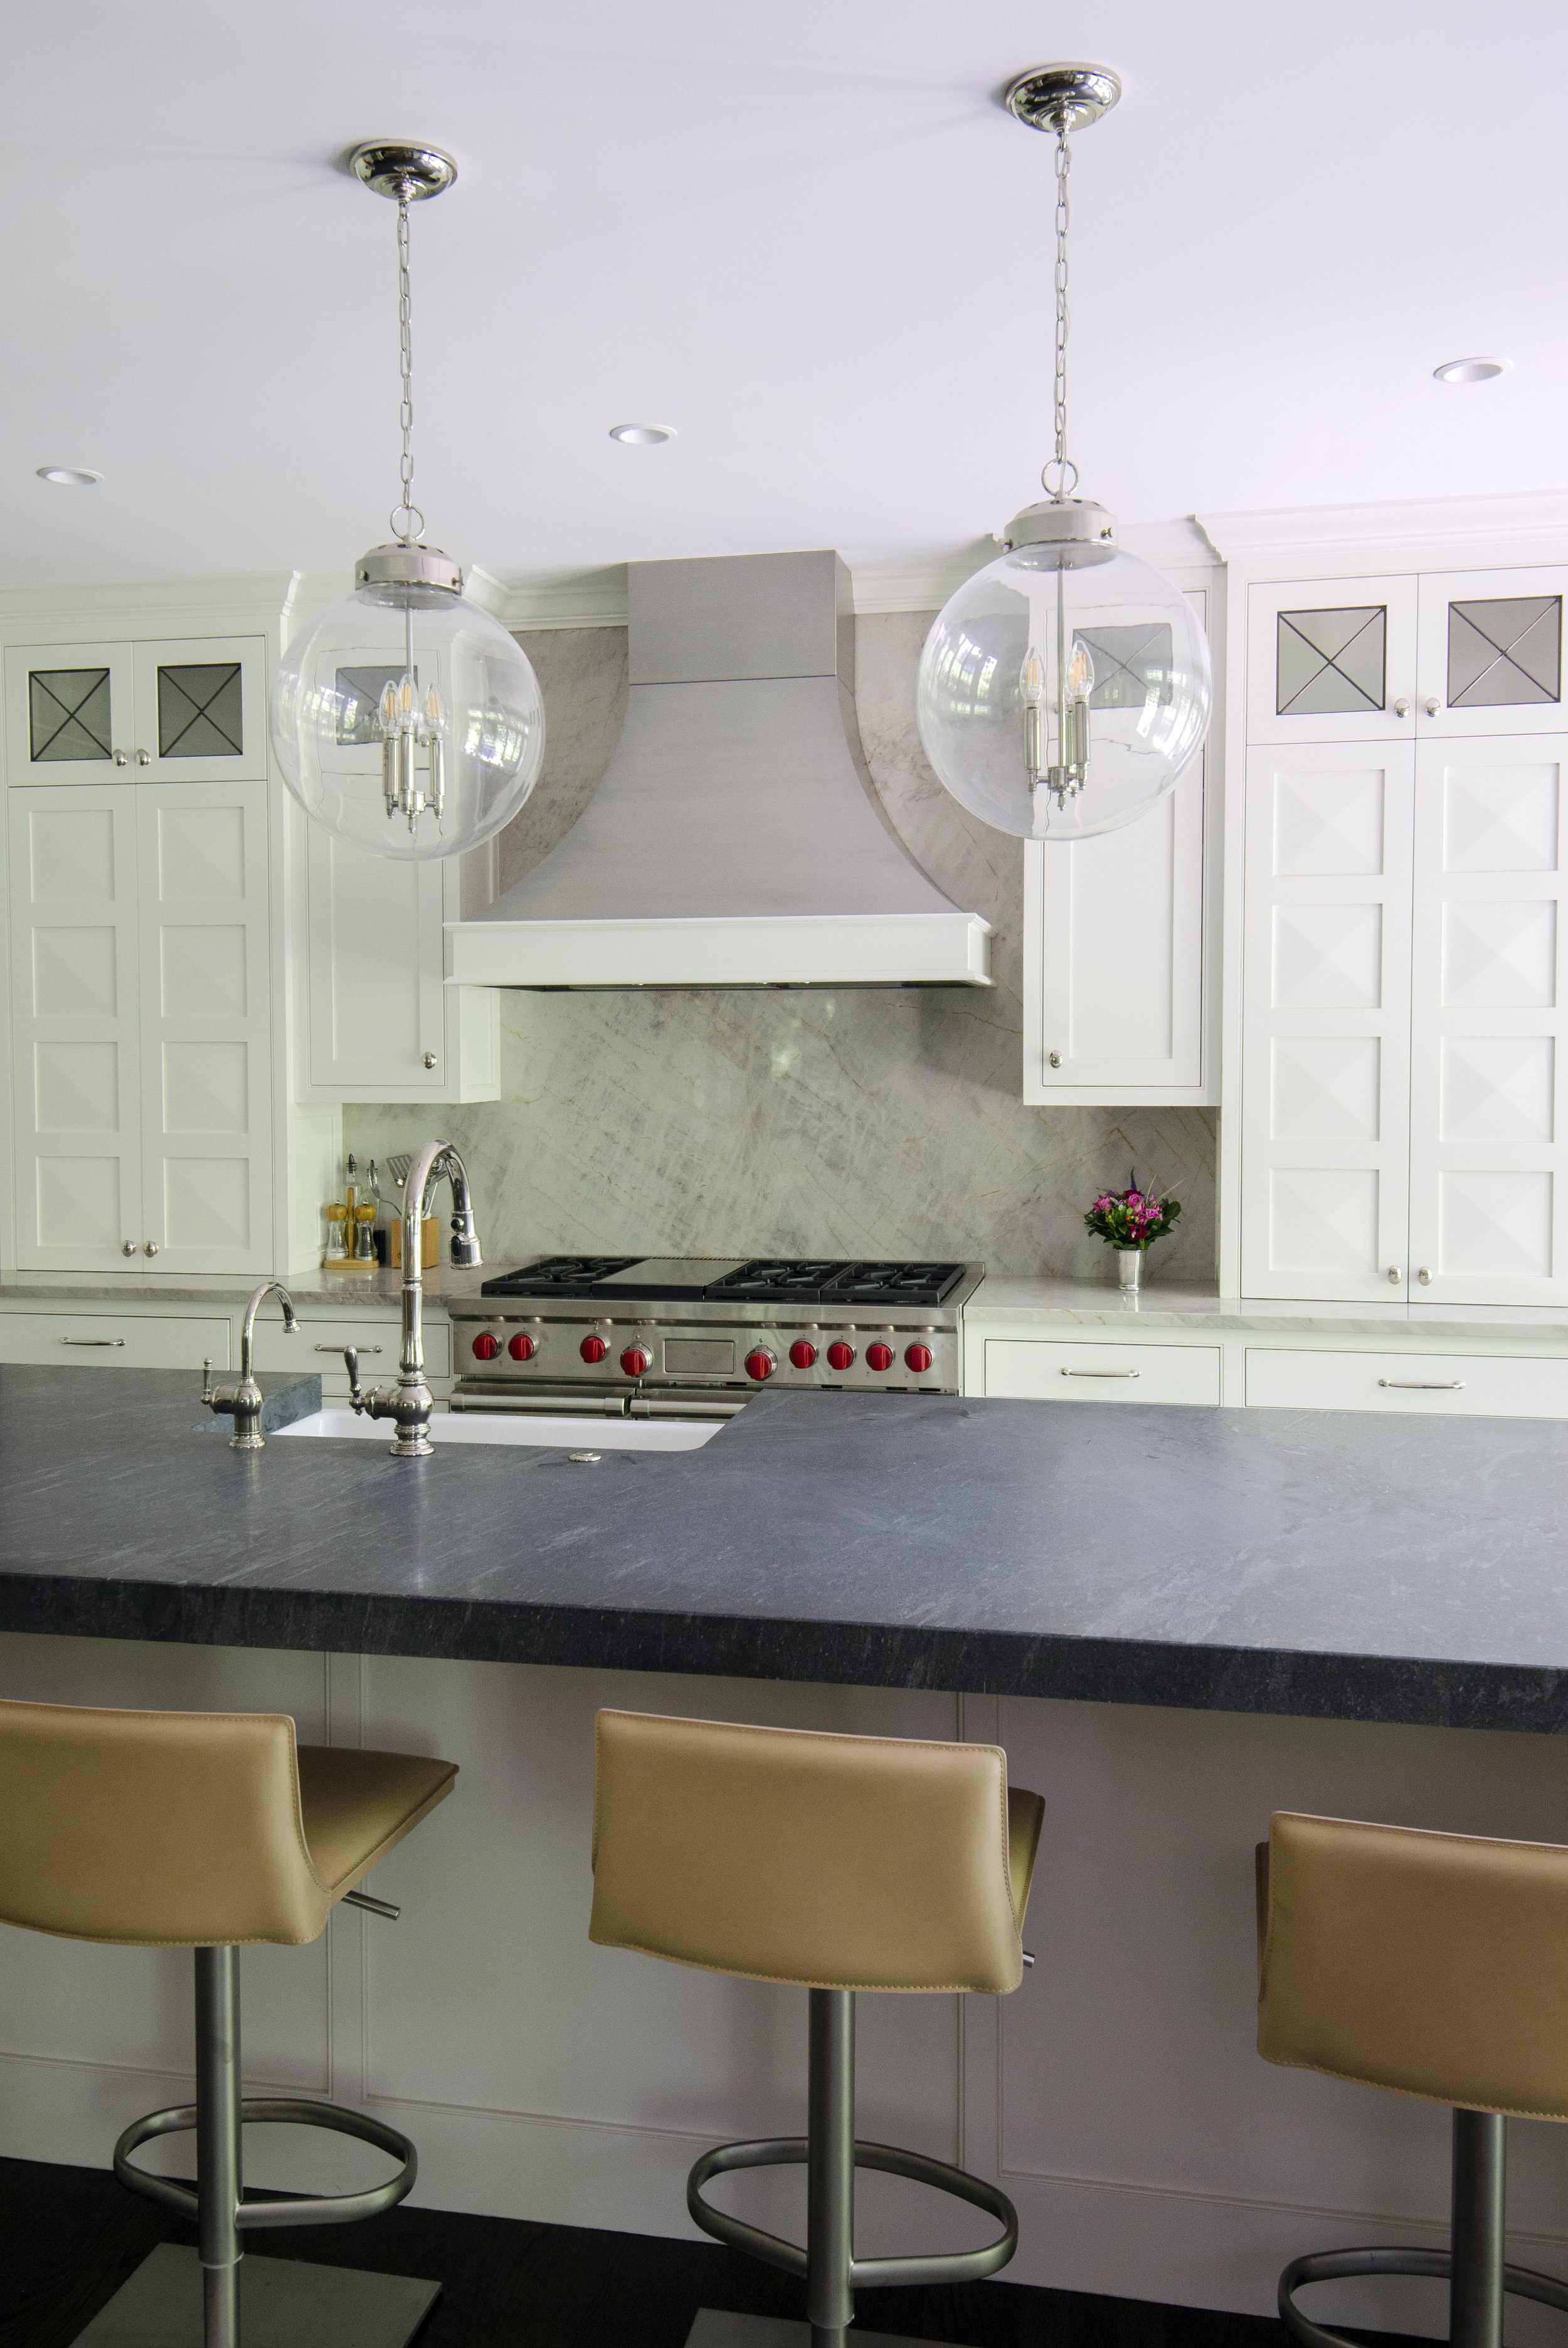 Kitchen_10.jpg